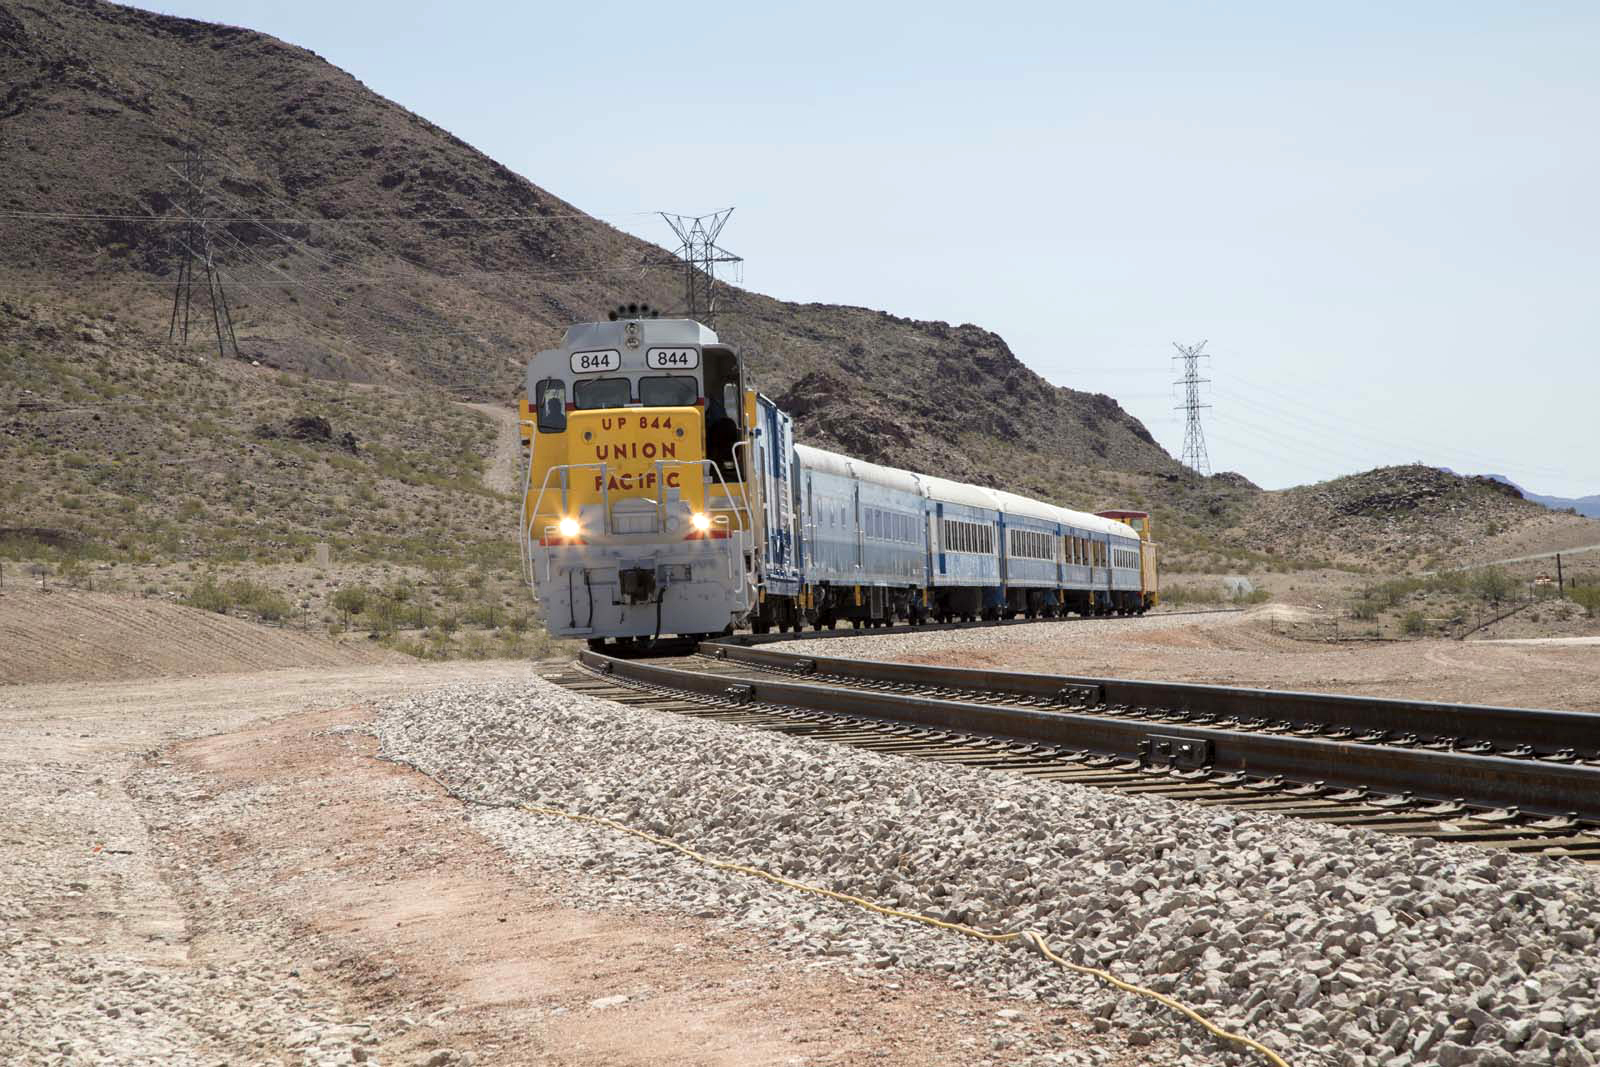 A Union Pacific train passes during the I-11 railroad bridge dedication ceremony